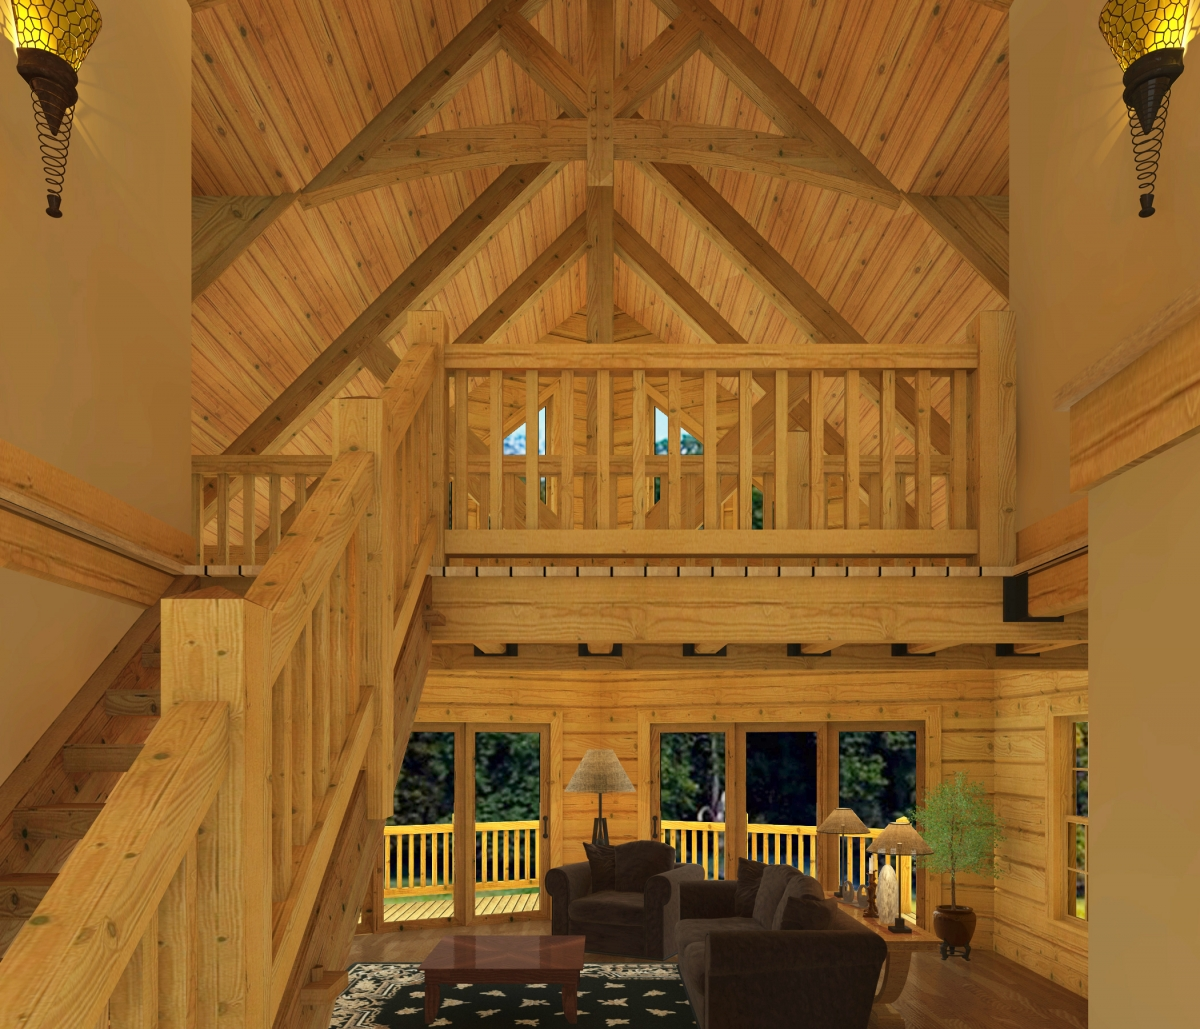 Timber Frame Homes And Floor Plans Southland Log Homes - Timber frame homes plans